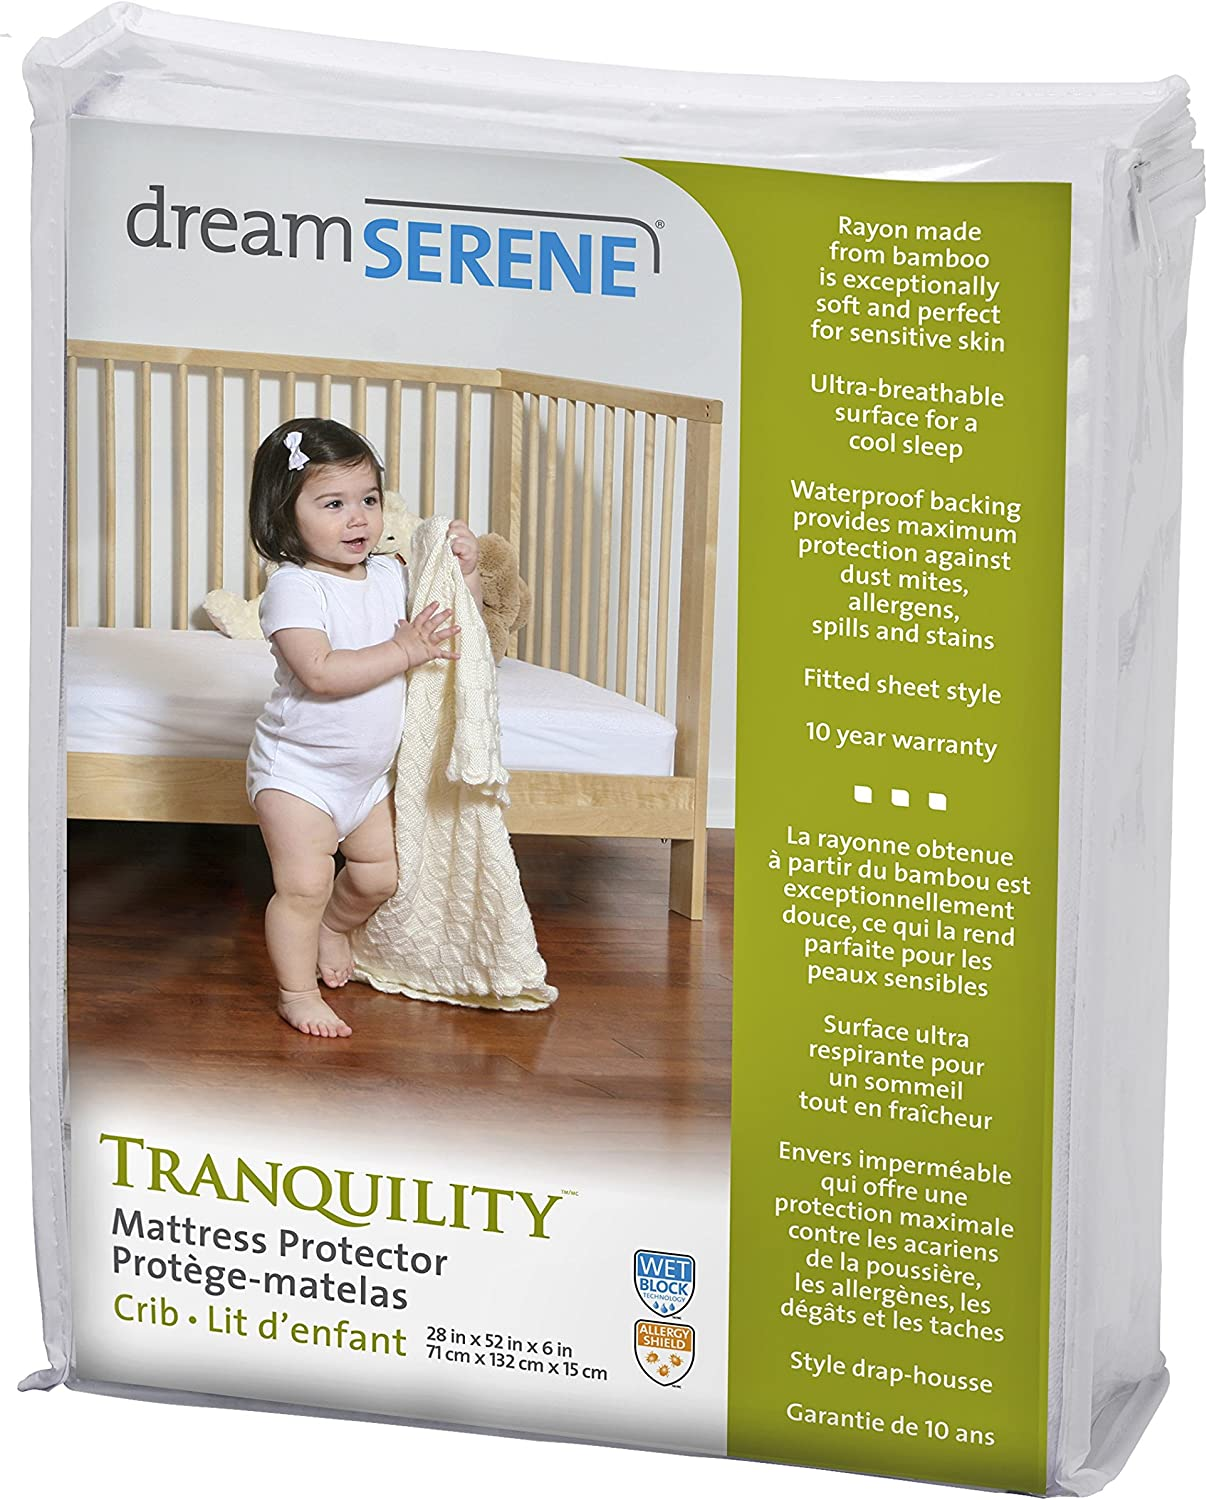 DreamSerene Tranquility Hypoallergenic, Waterproof and Breathable Mattress Predector, Crib, White